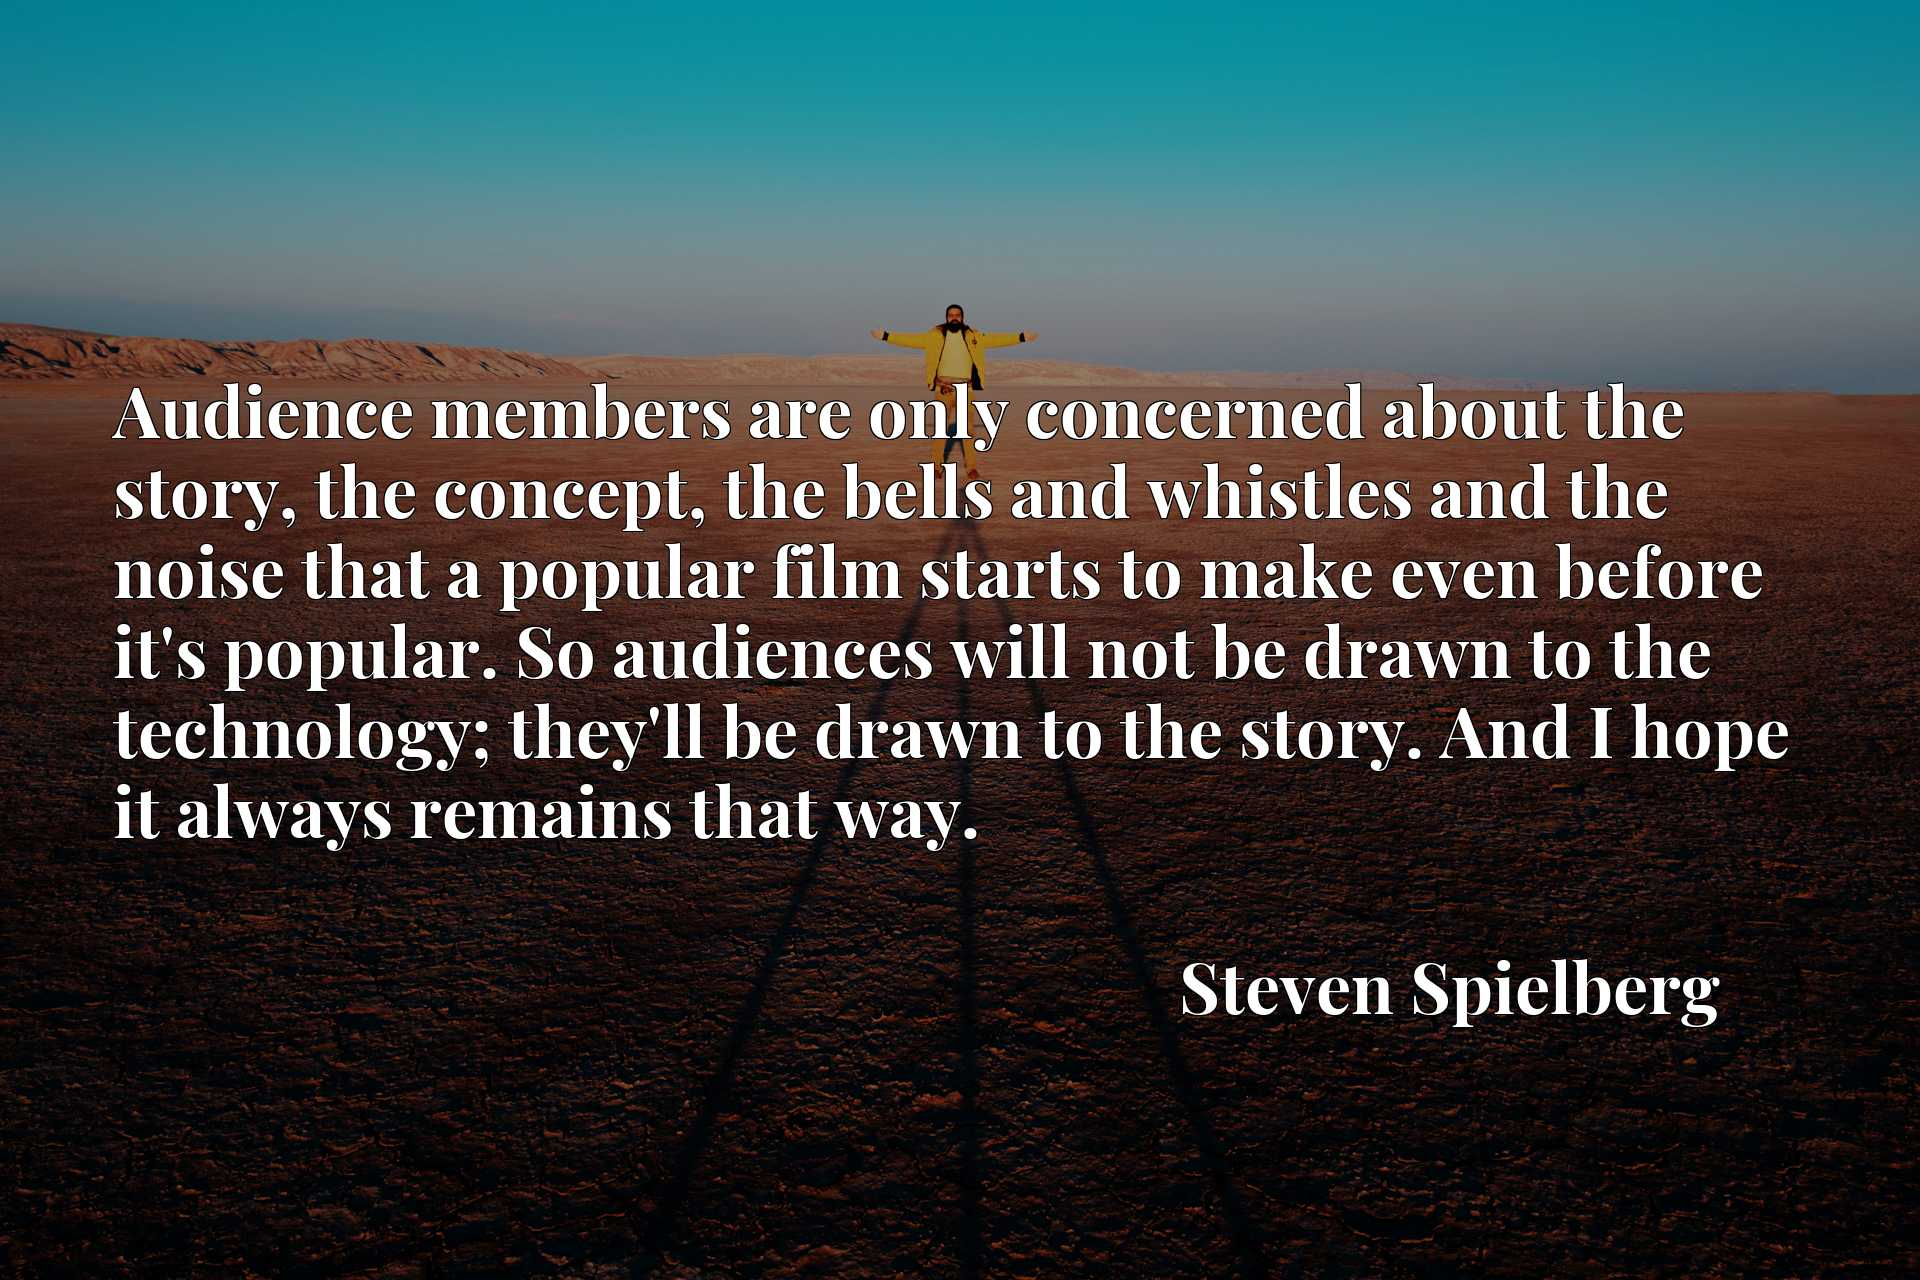 Audience members are only concerned about the story, the concept, the bells and whistles and the noise that a popular film starts to make even before it's popular. So audiences will not be drawn to the technology; they'll be drawn to the story. And I hope it always remains that way.